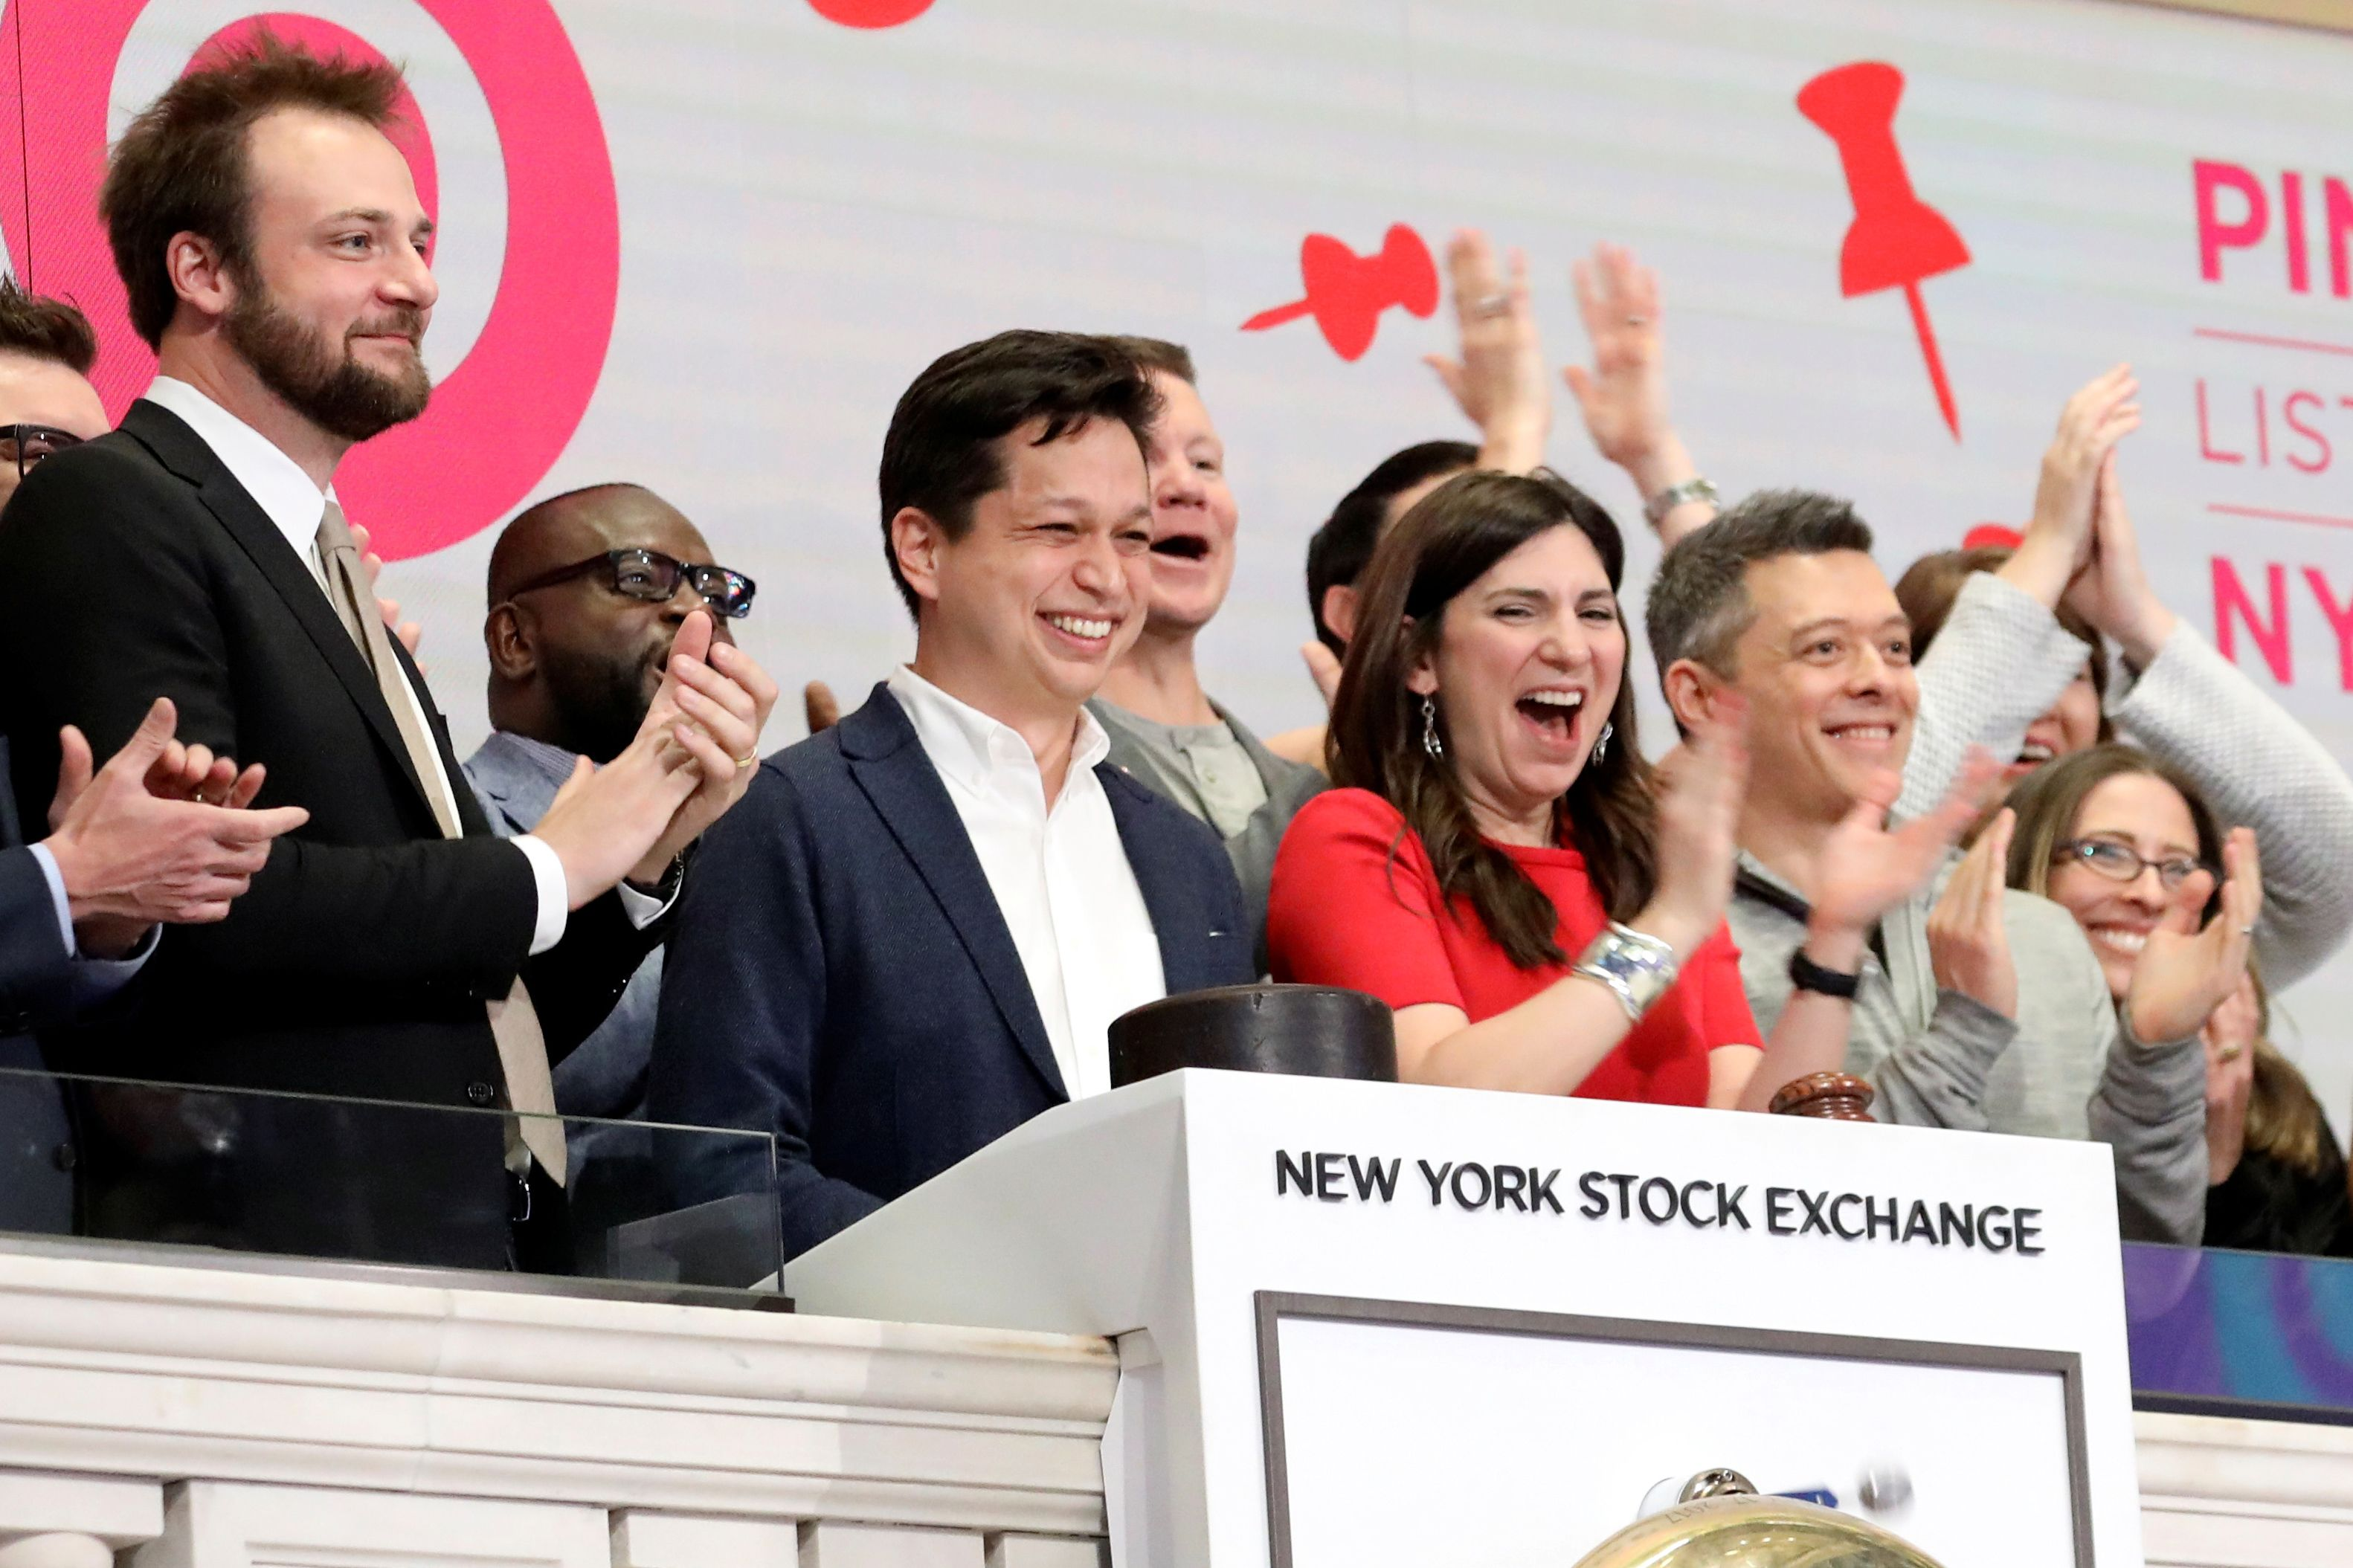 IPOs from Uber, Pinterest, Zoom produced record exits in Q2: PitchBook